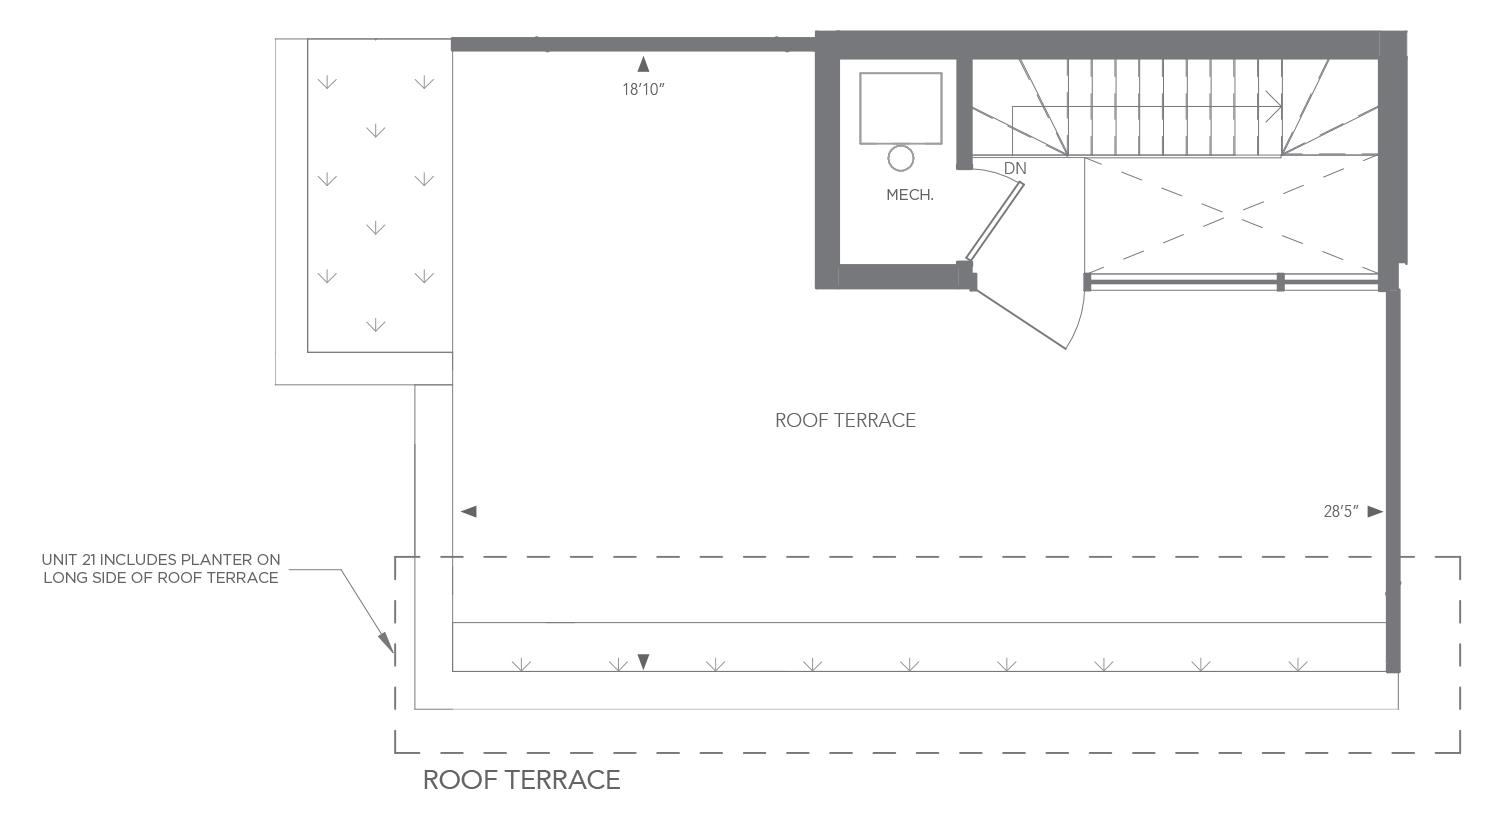 No. 22 Floorplan 4